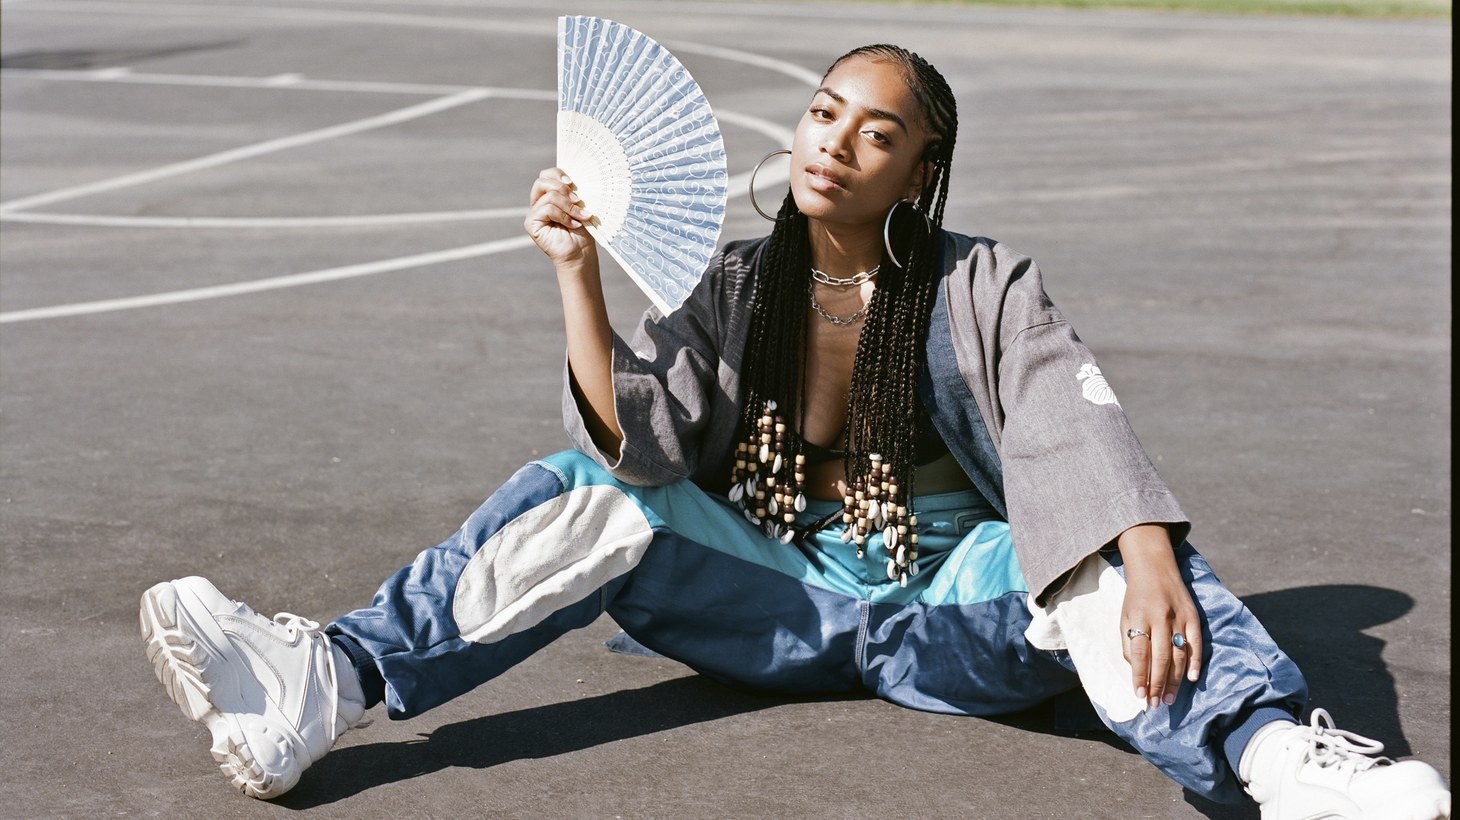 LA-based Japanese/African-American artist UMI is able to crisscross different styles on her new EP through the lens of a mixed-race woman in the music industry.